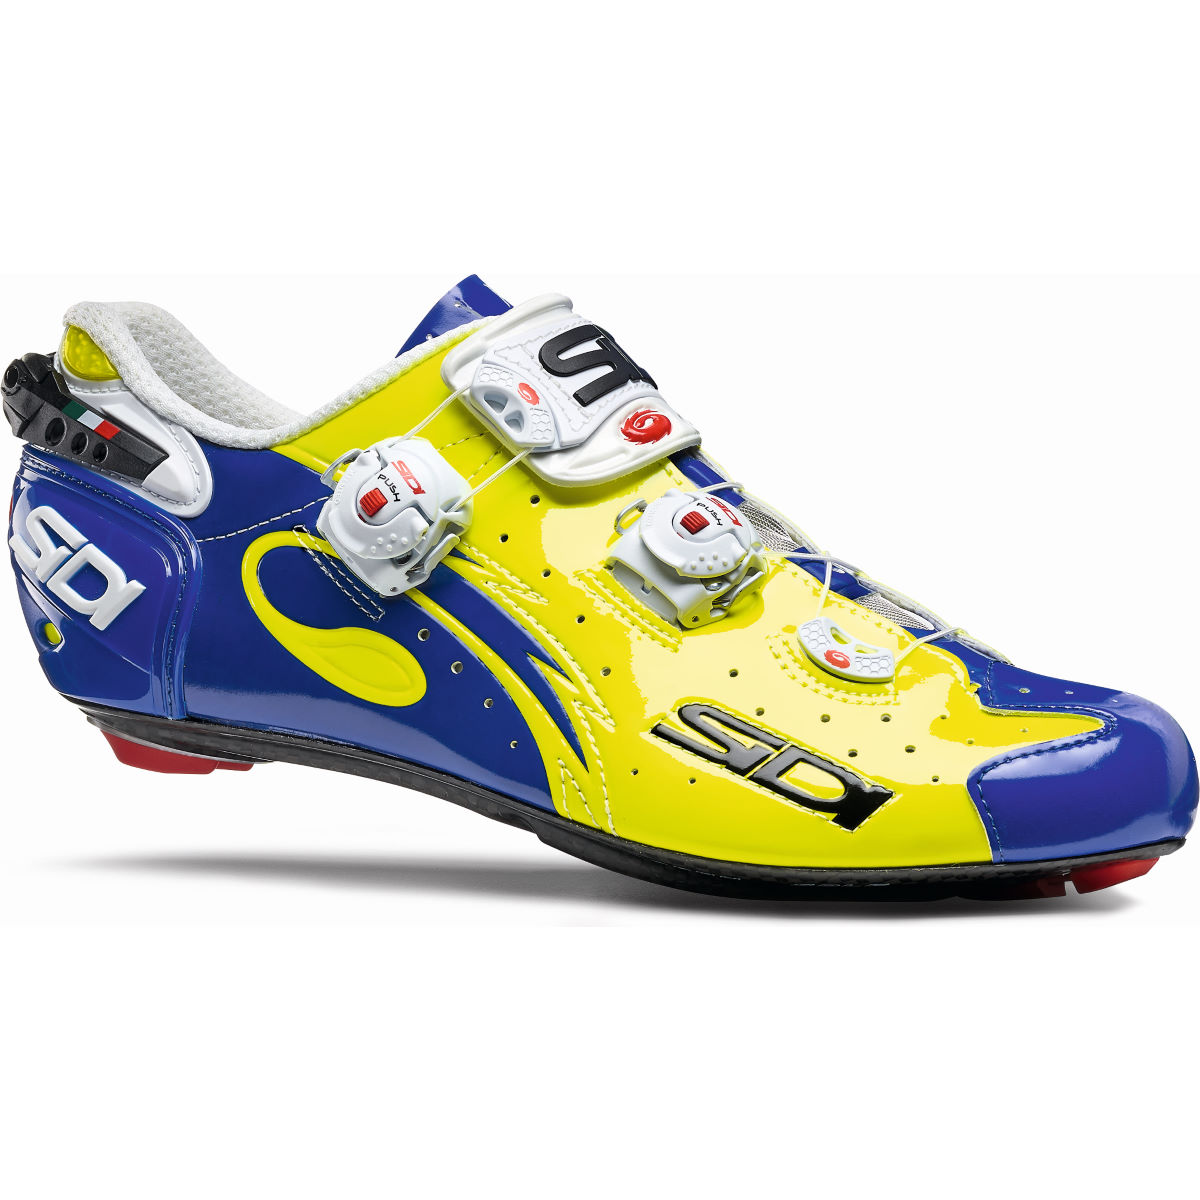 Chaussures de route Sidi Wire Carbon Vernice - 39 Yellow/Blue Chaussures de route